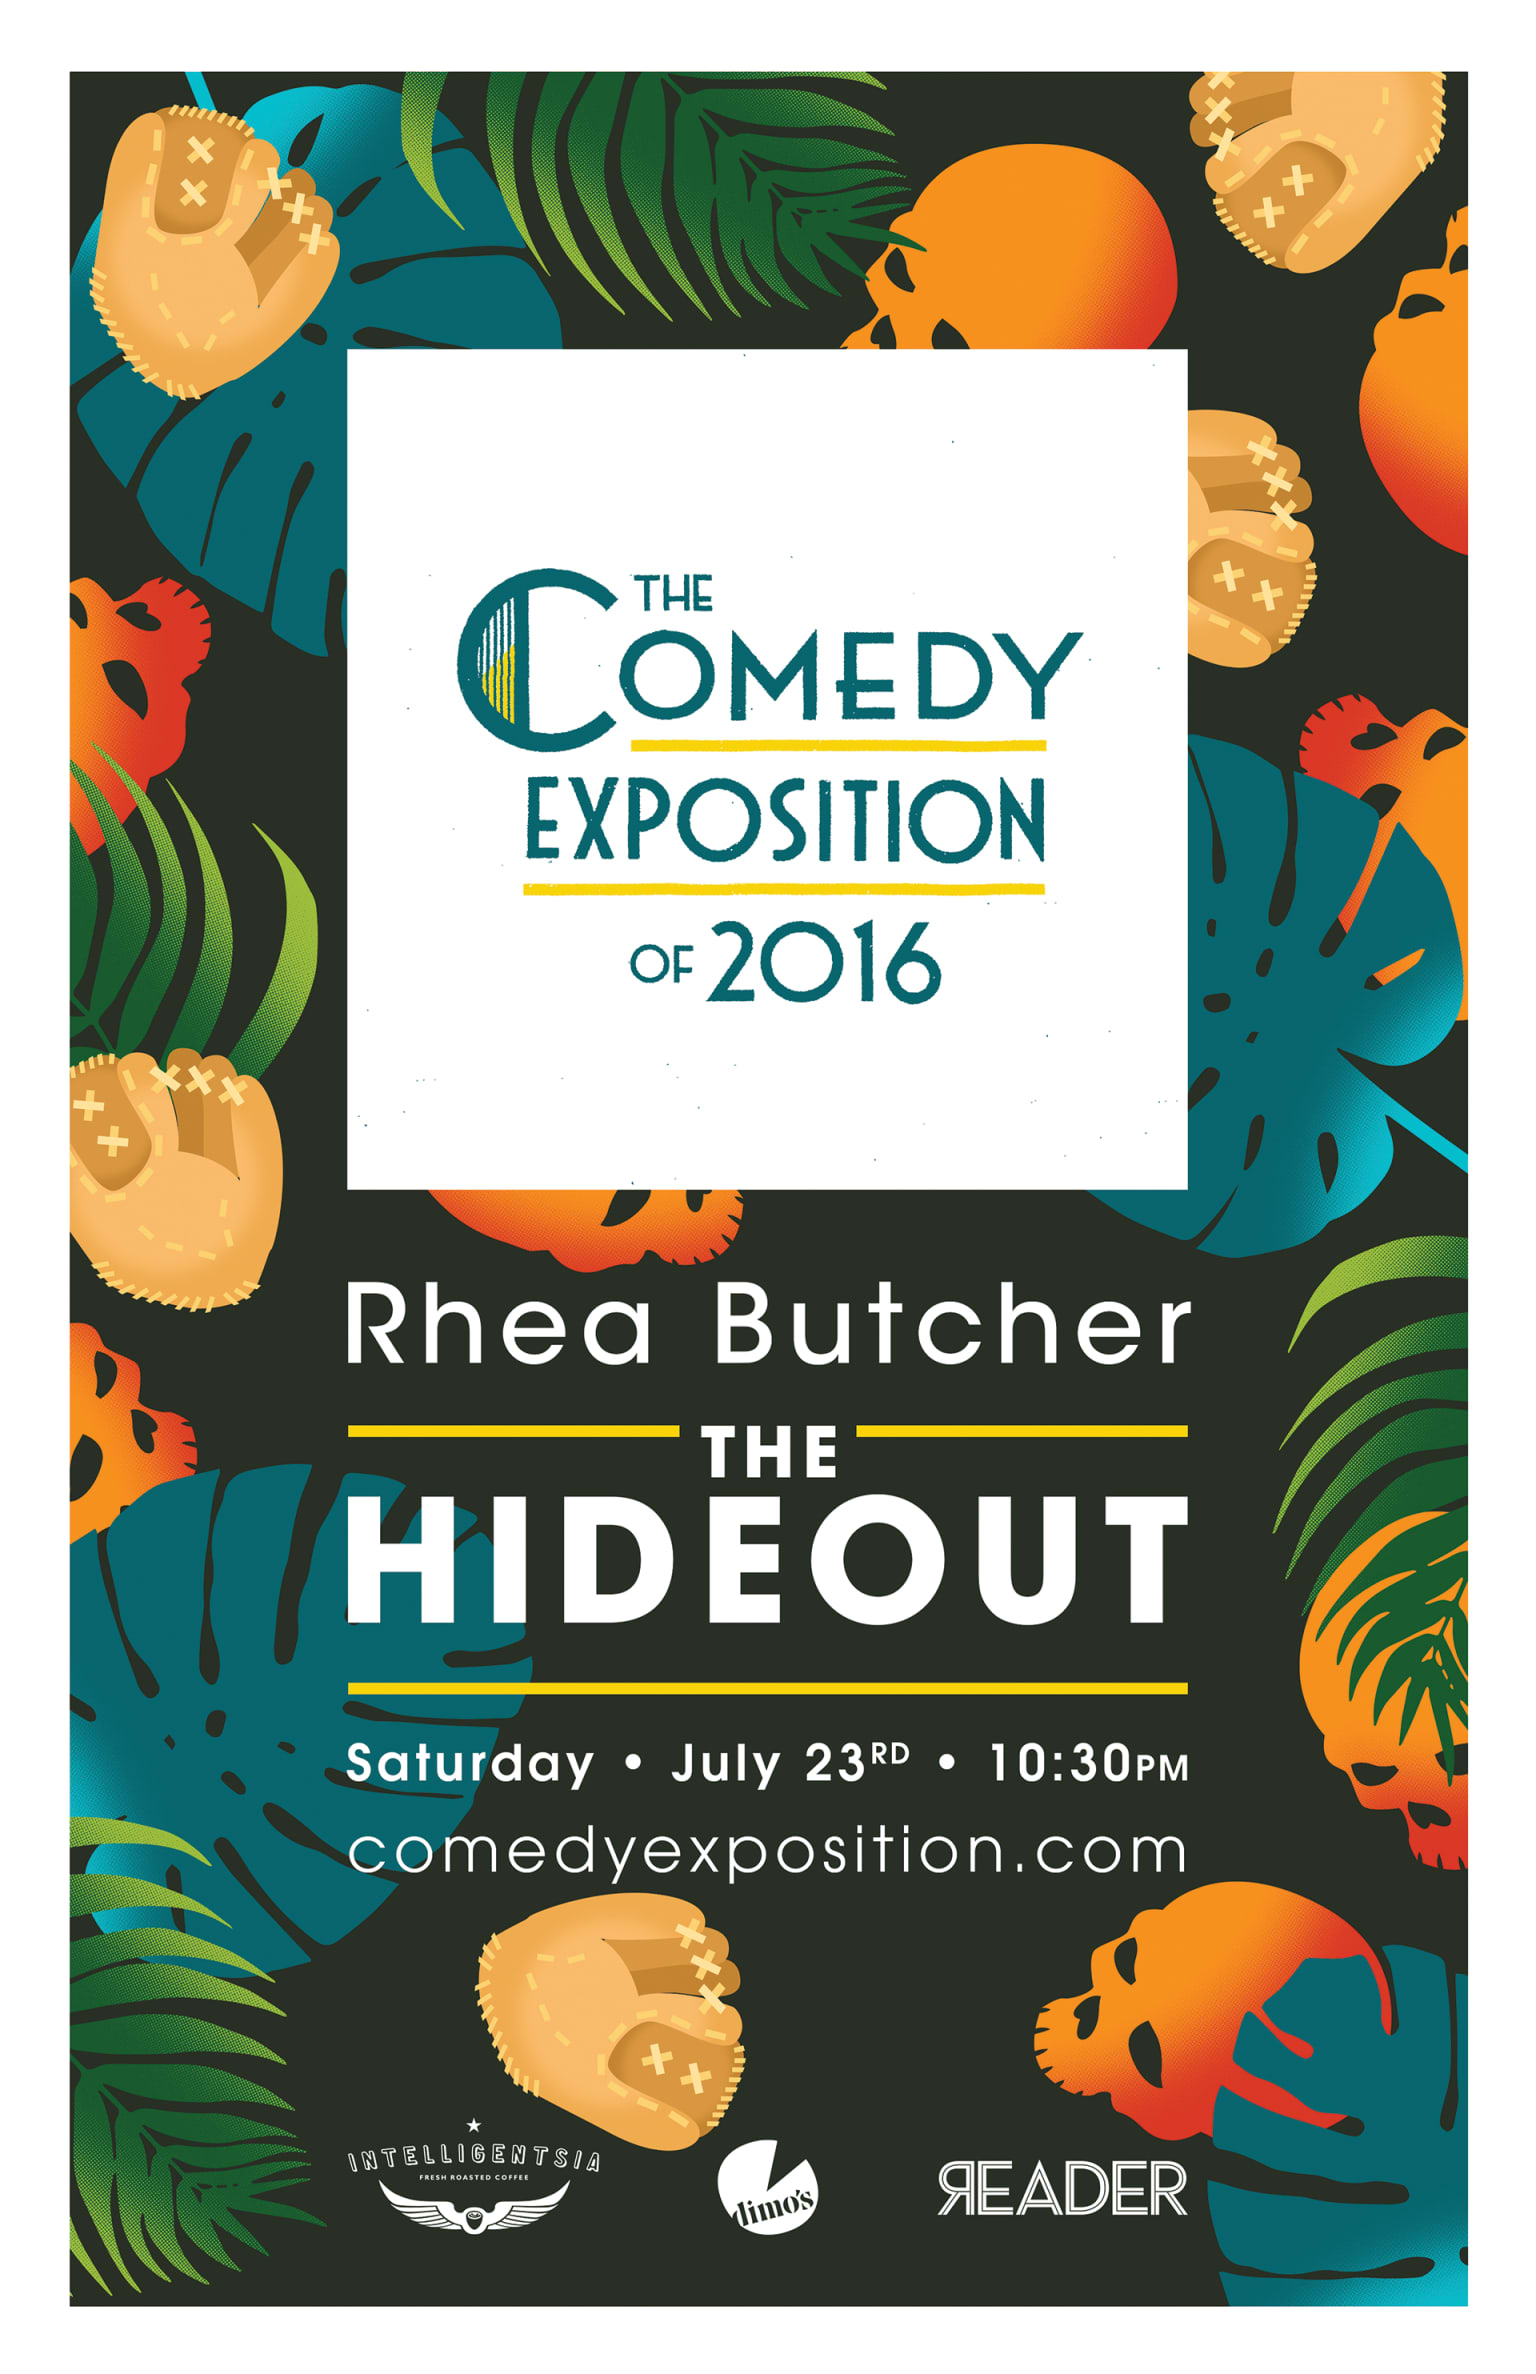 The Comedy Exposition Poster Series